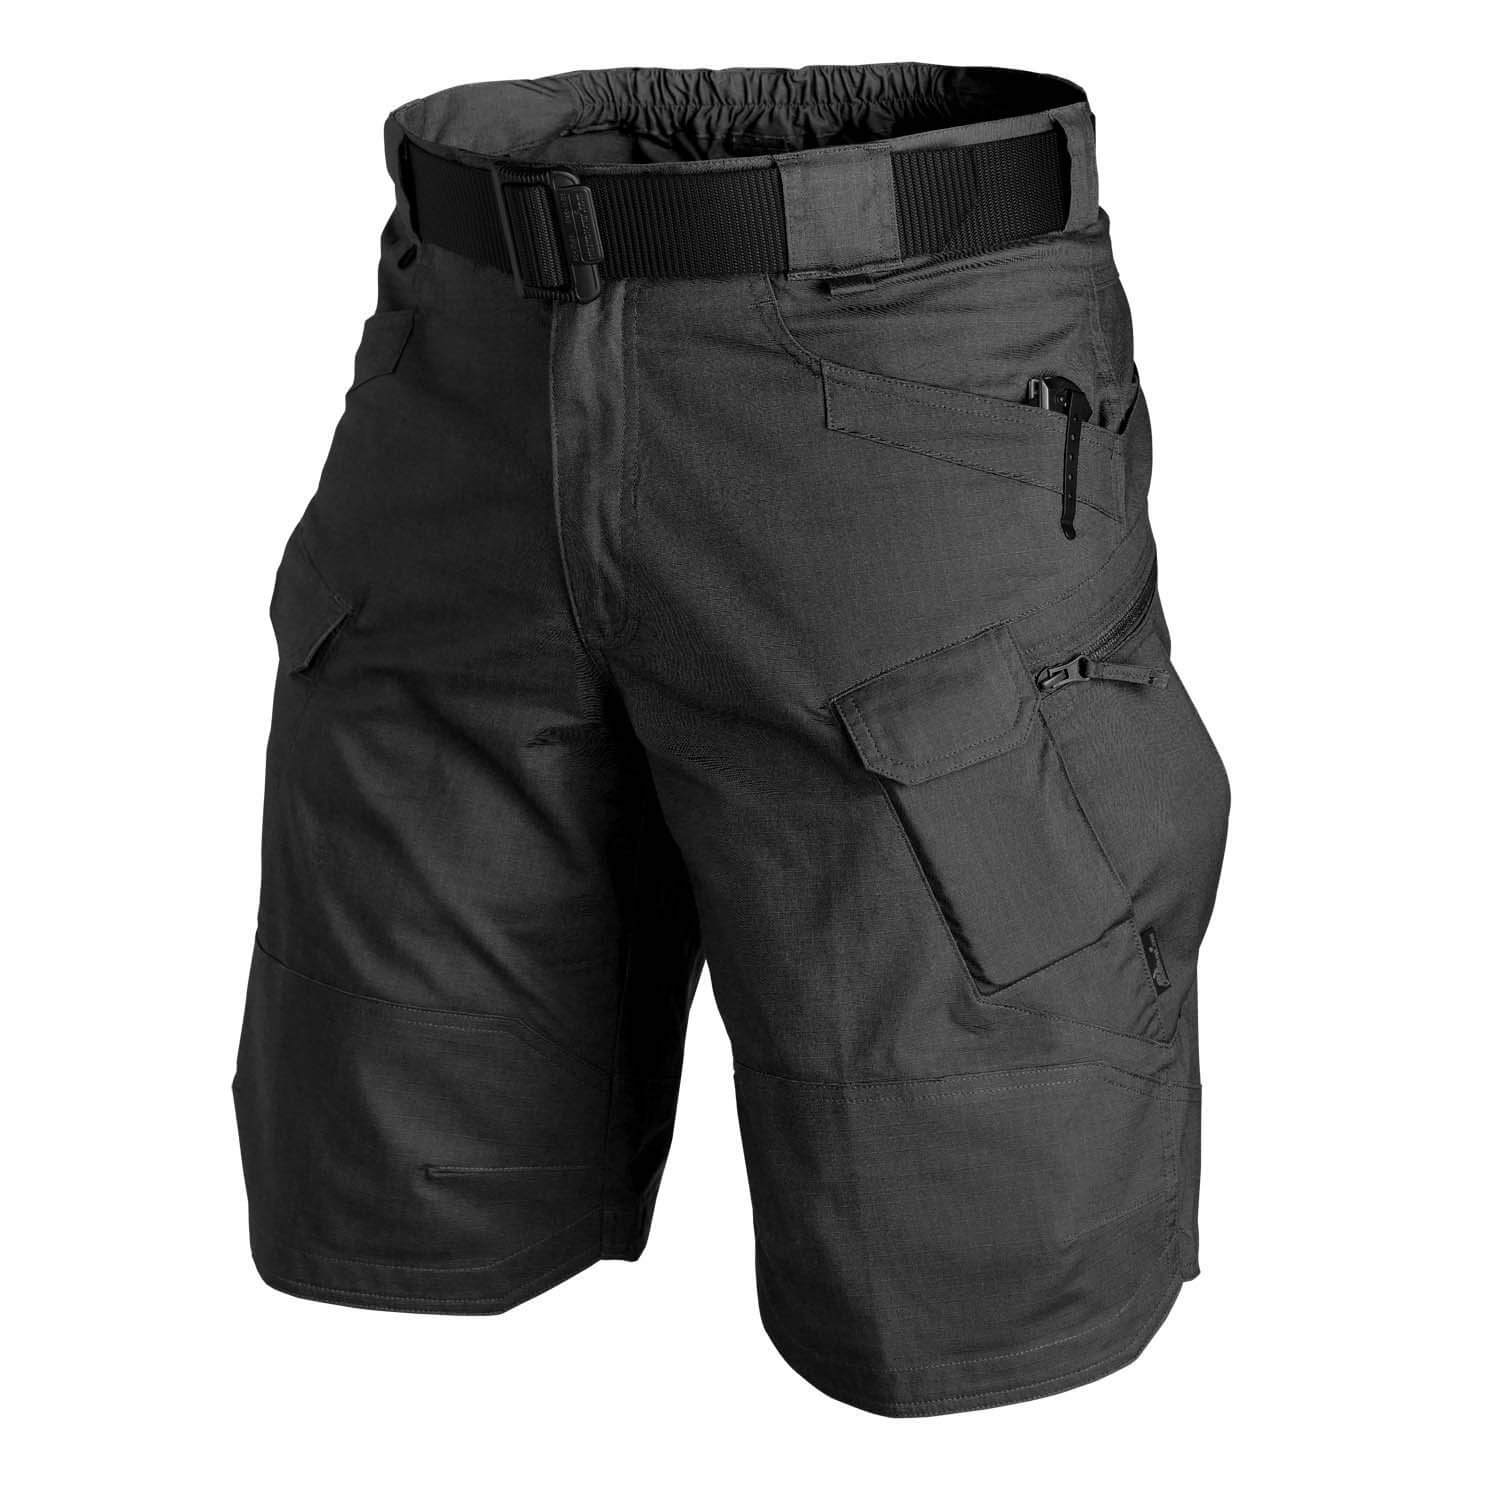 Men Classic Tactical Shorts Upgraded Waterproof Quick Dry Multi-pocket Short Pants Outdoor Hunting Fishing Military Cargo Shorts